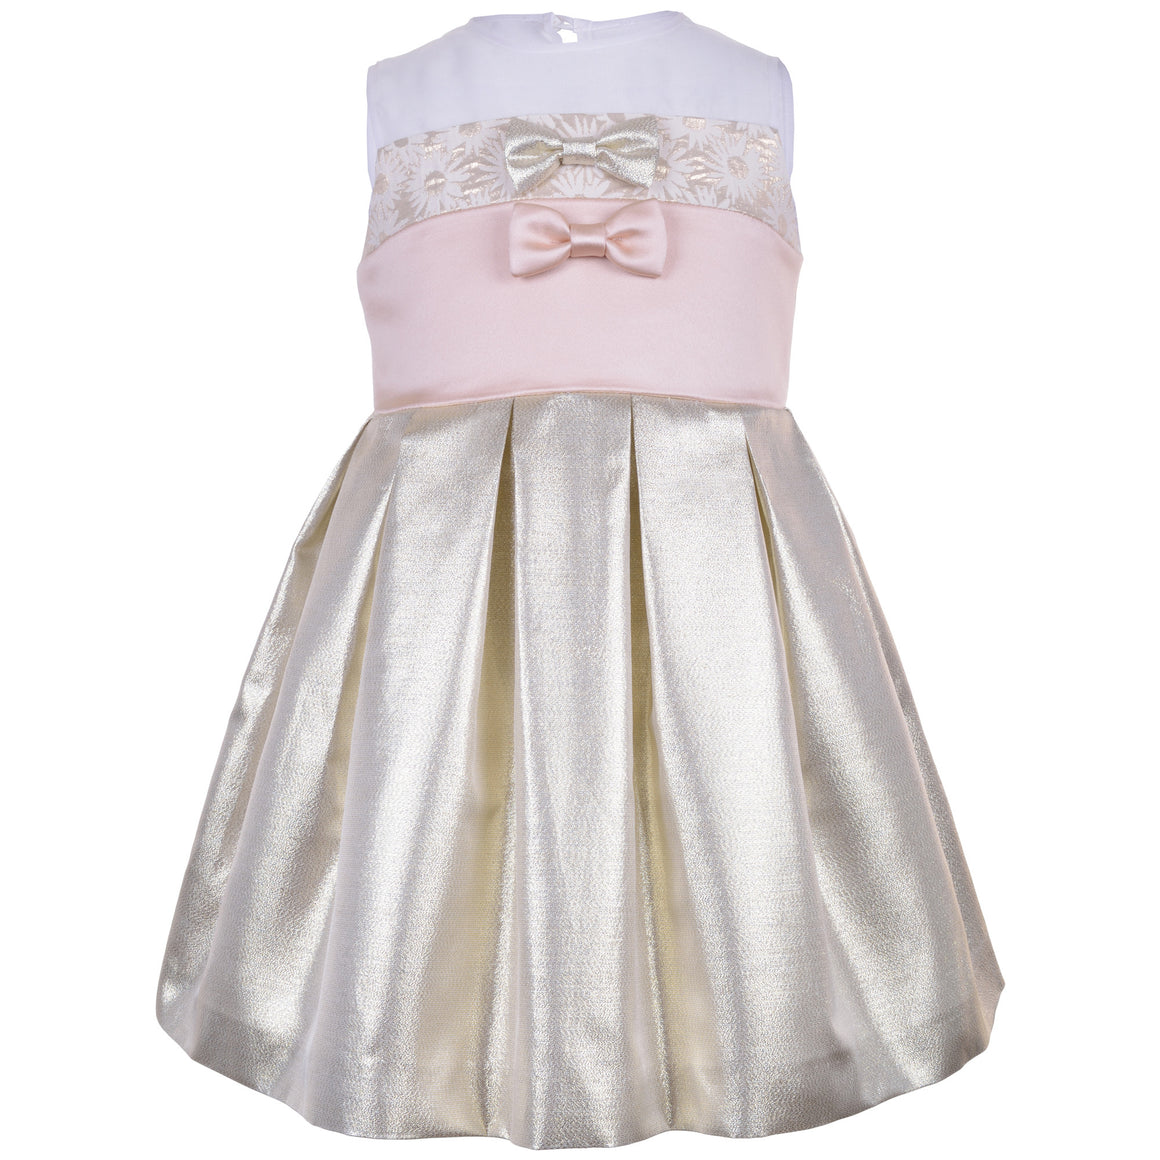 Hucklebones - Metallic Gold Bodice Party Dress | Party Dresses | Bon Bon Tresor